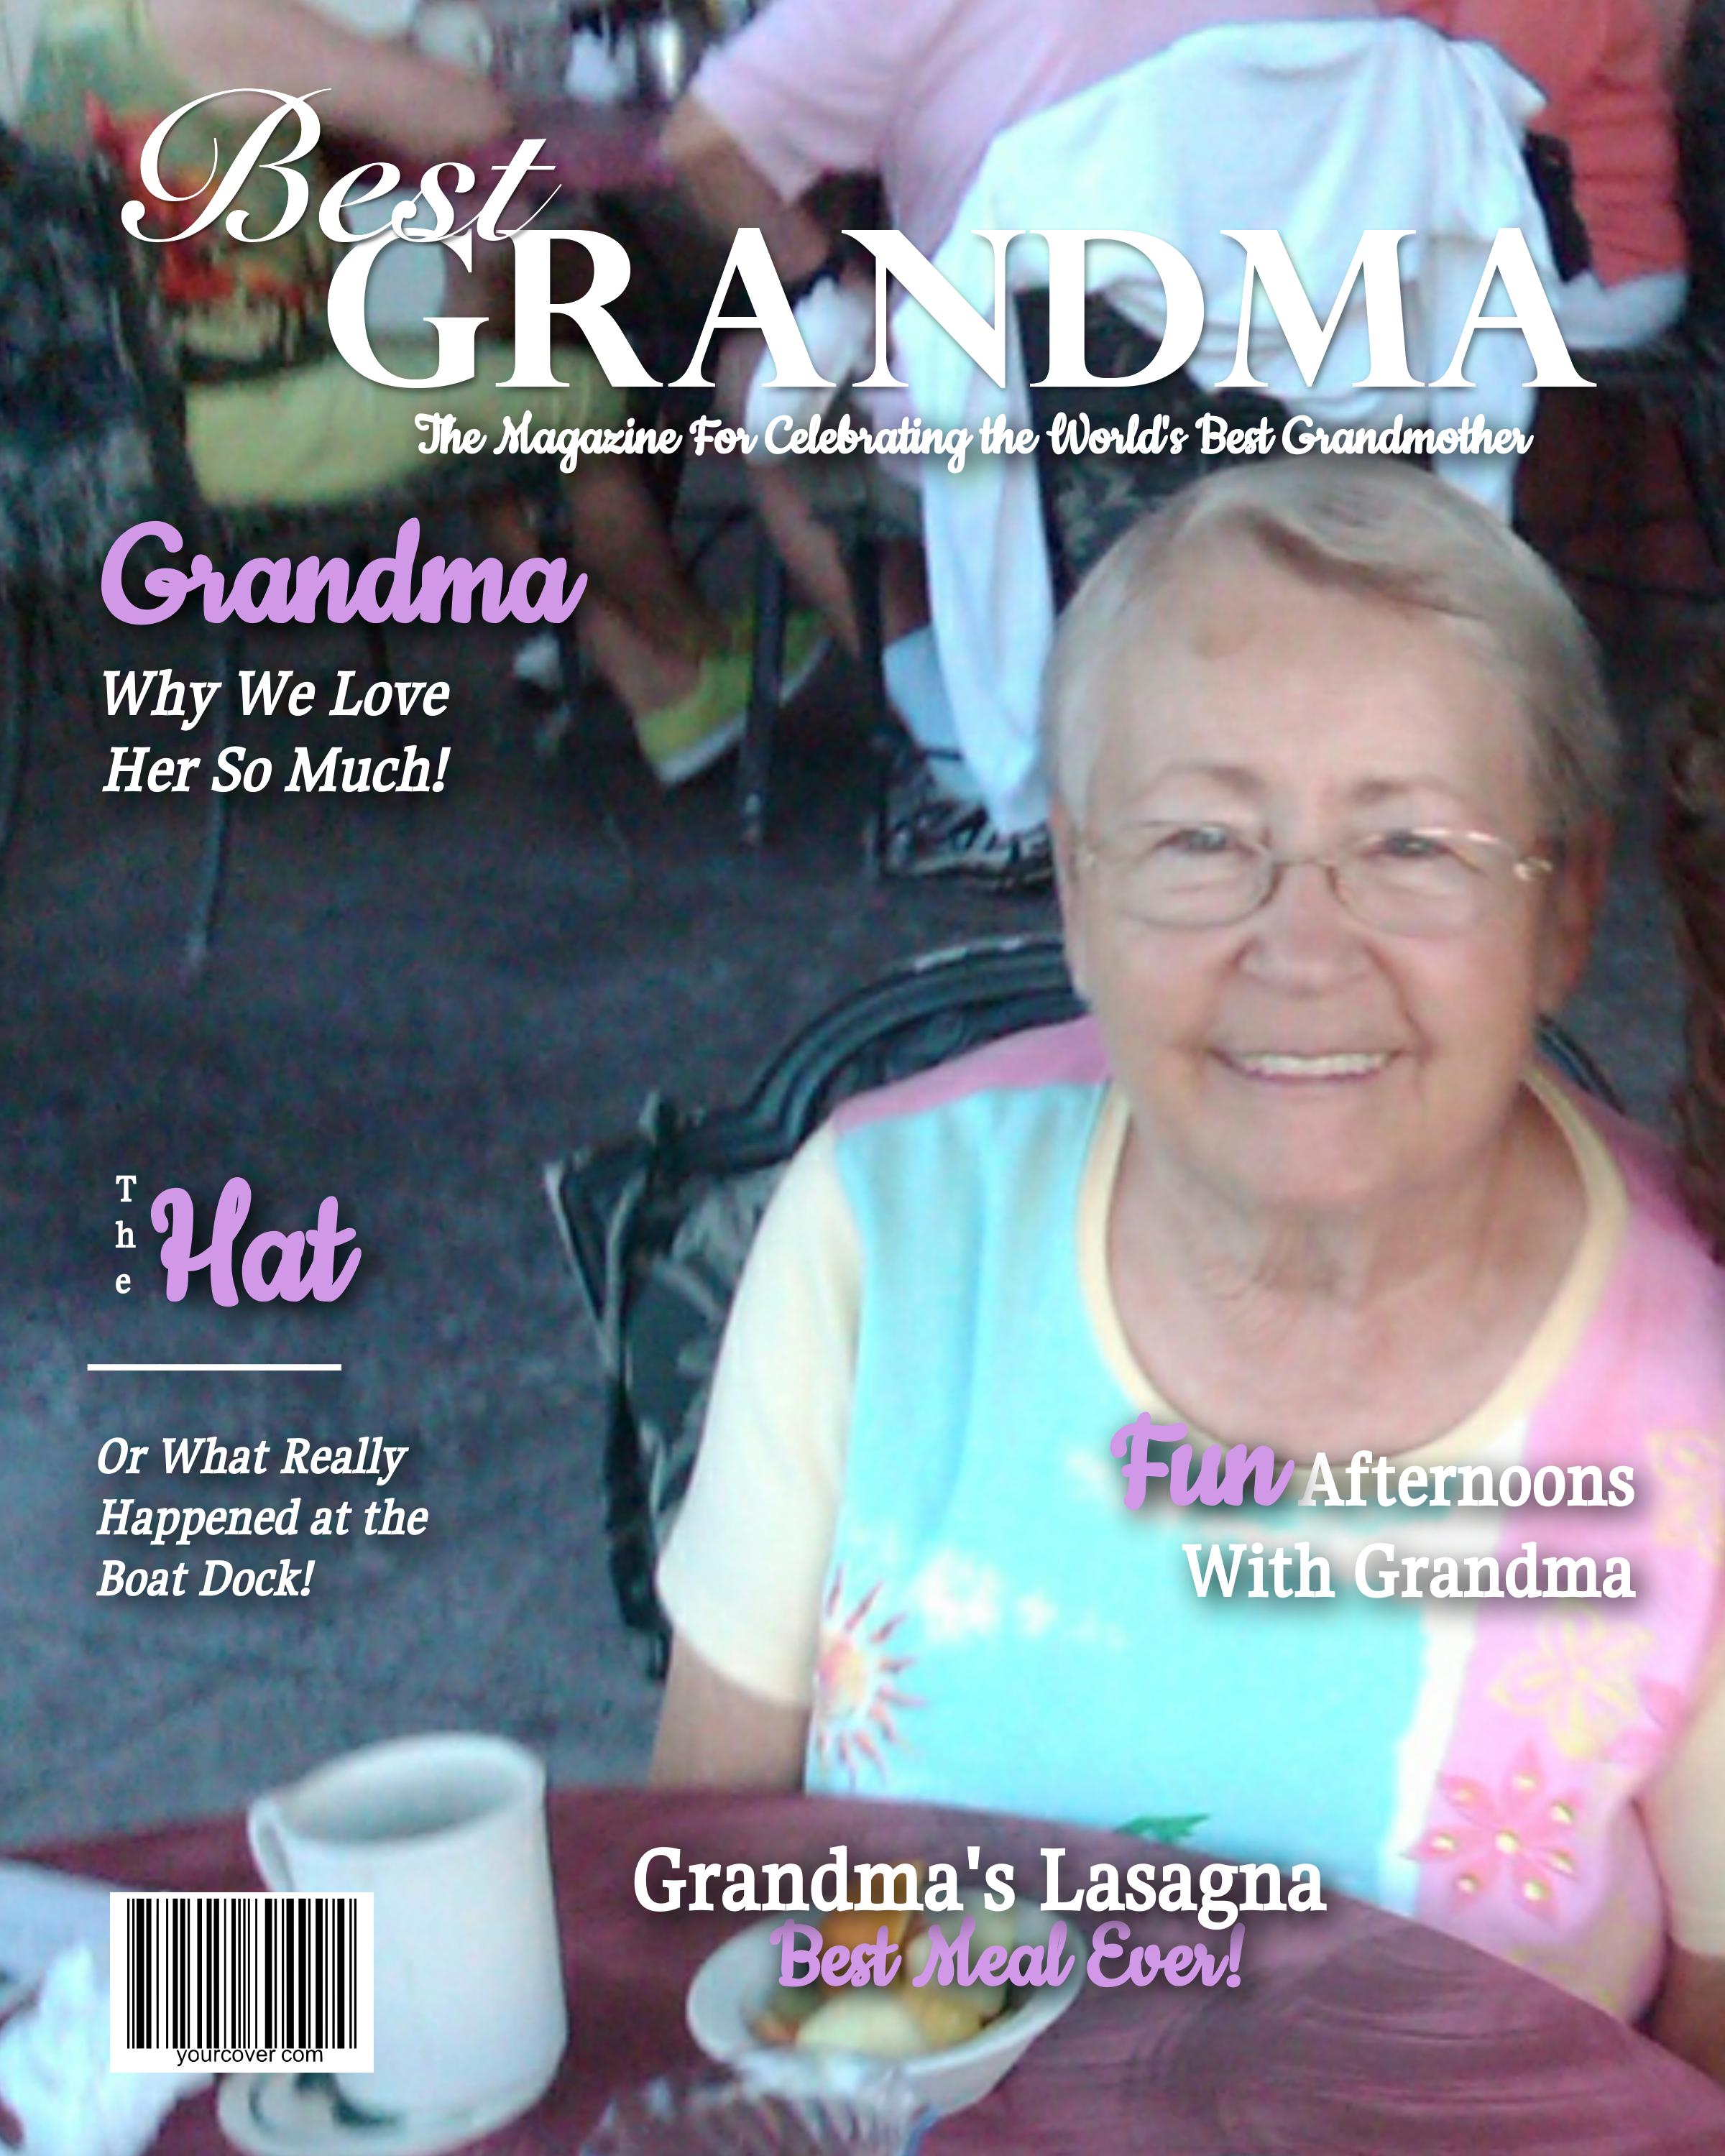 Best Grandma Magazine Cover Template